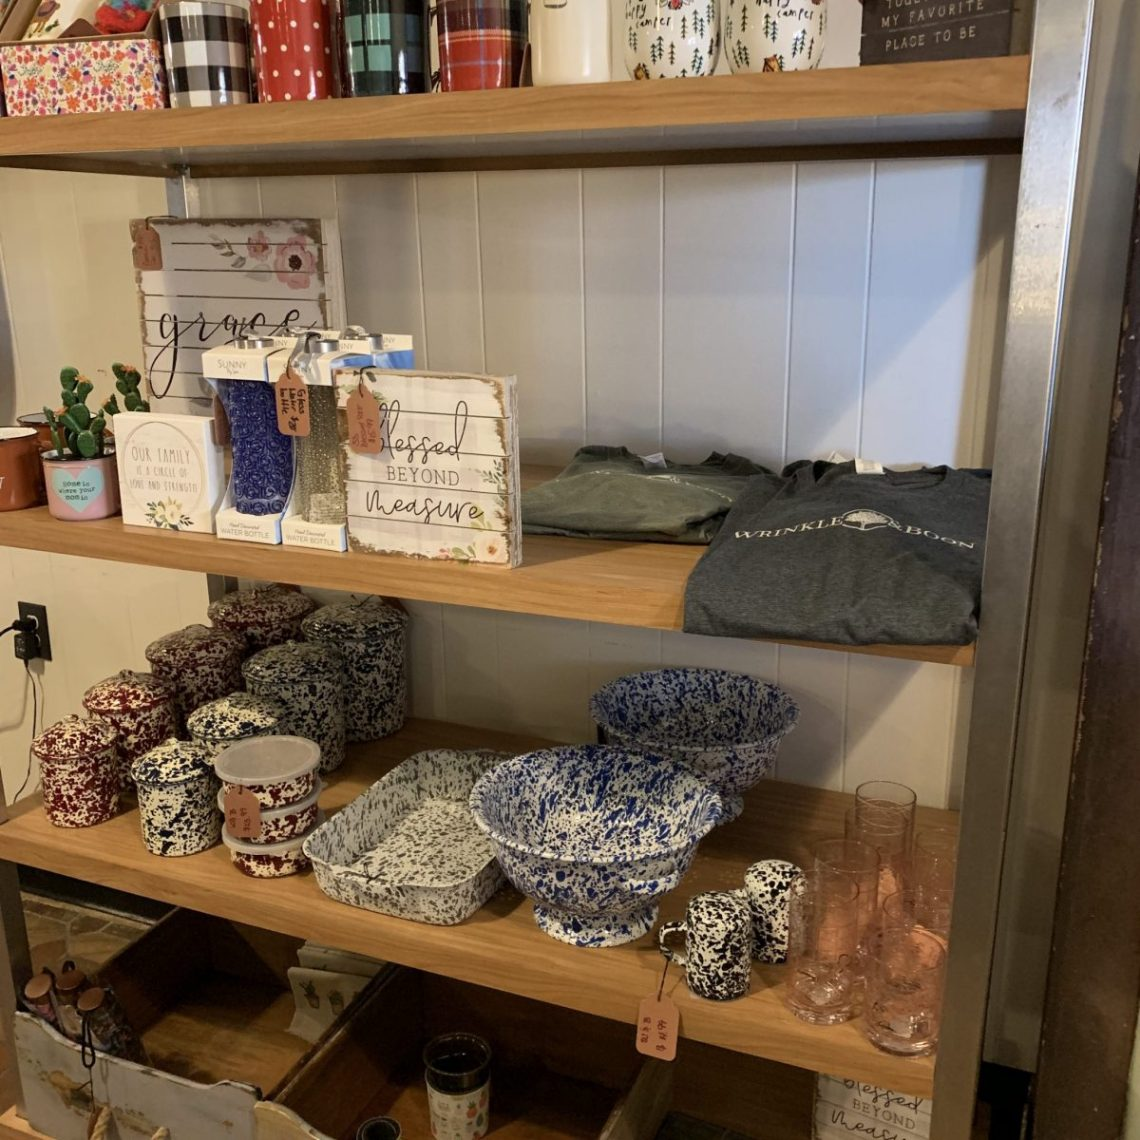 decorative signs, a wrinkle and boon t-shirt, bowls, and mugs